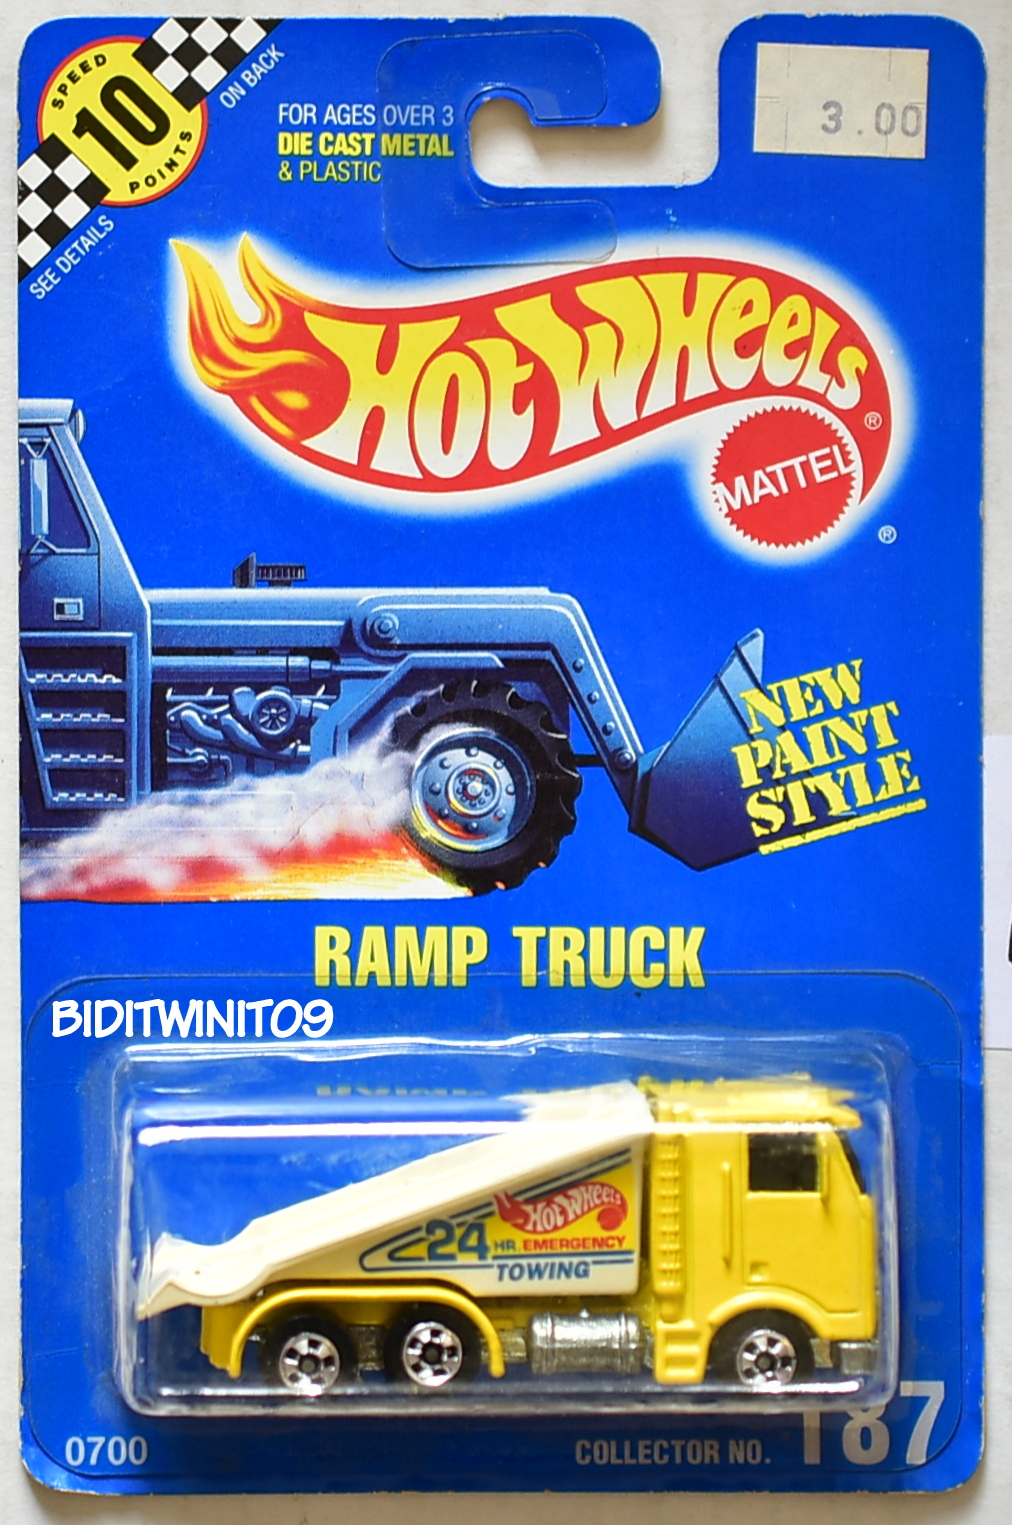 HOT WHEELS 1990 BLUE CARD RAMP TRUCK #187 YELLOW 16